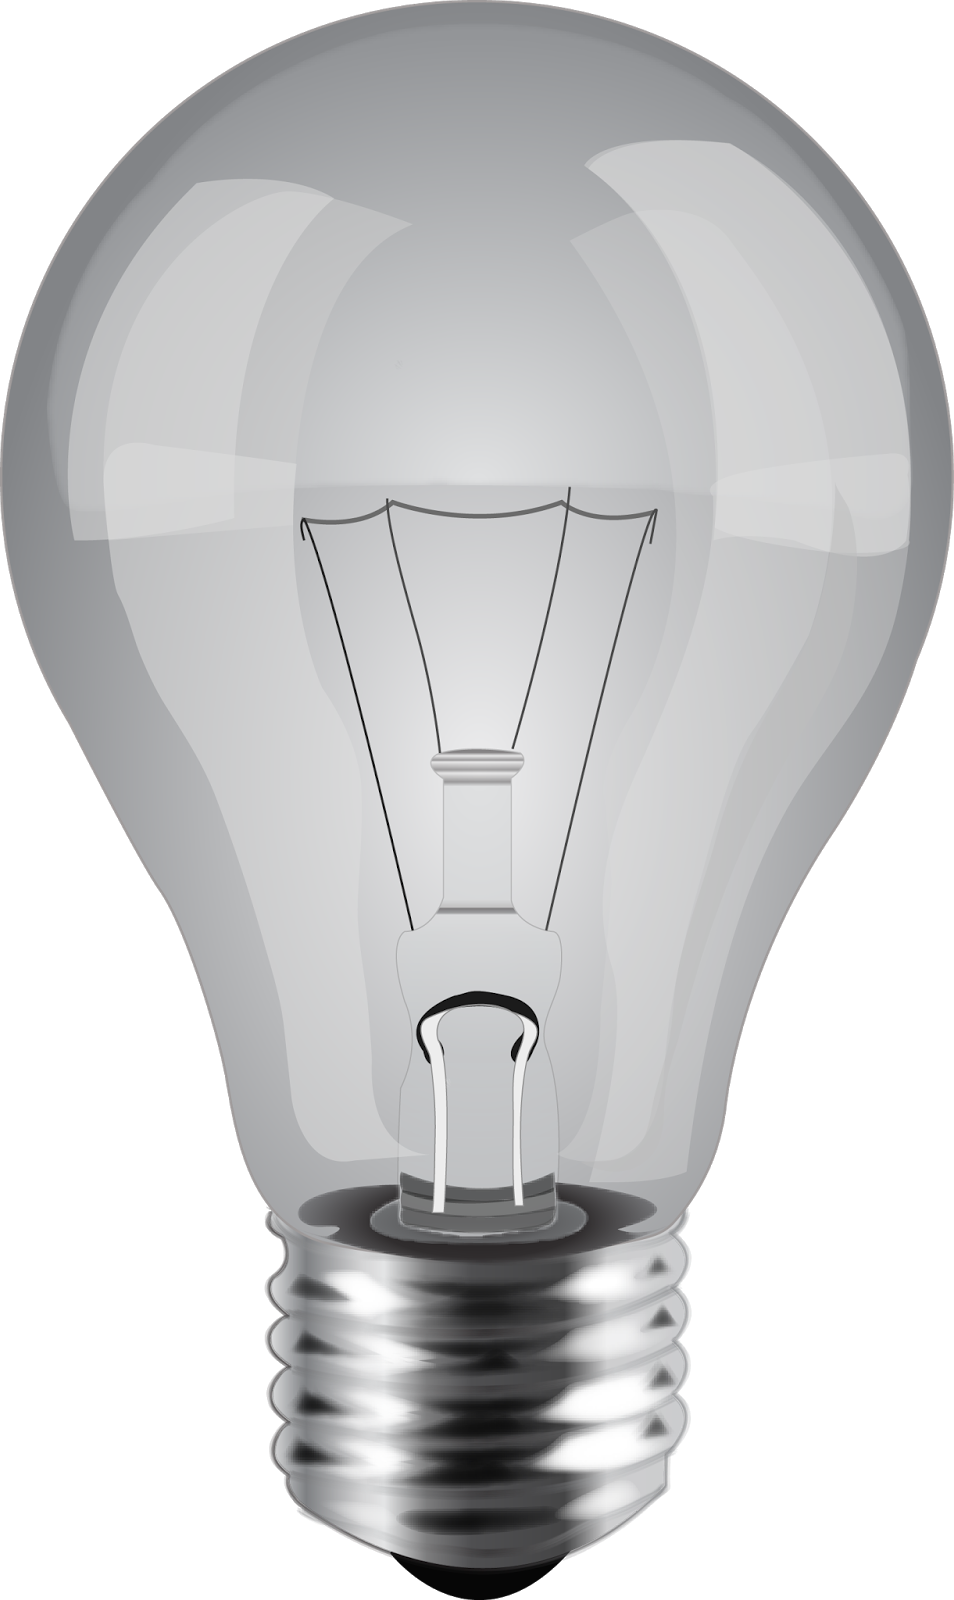 Light practice adobe illustrator. Bulb drawing jpg royalty free library